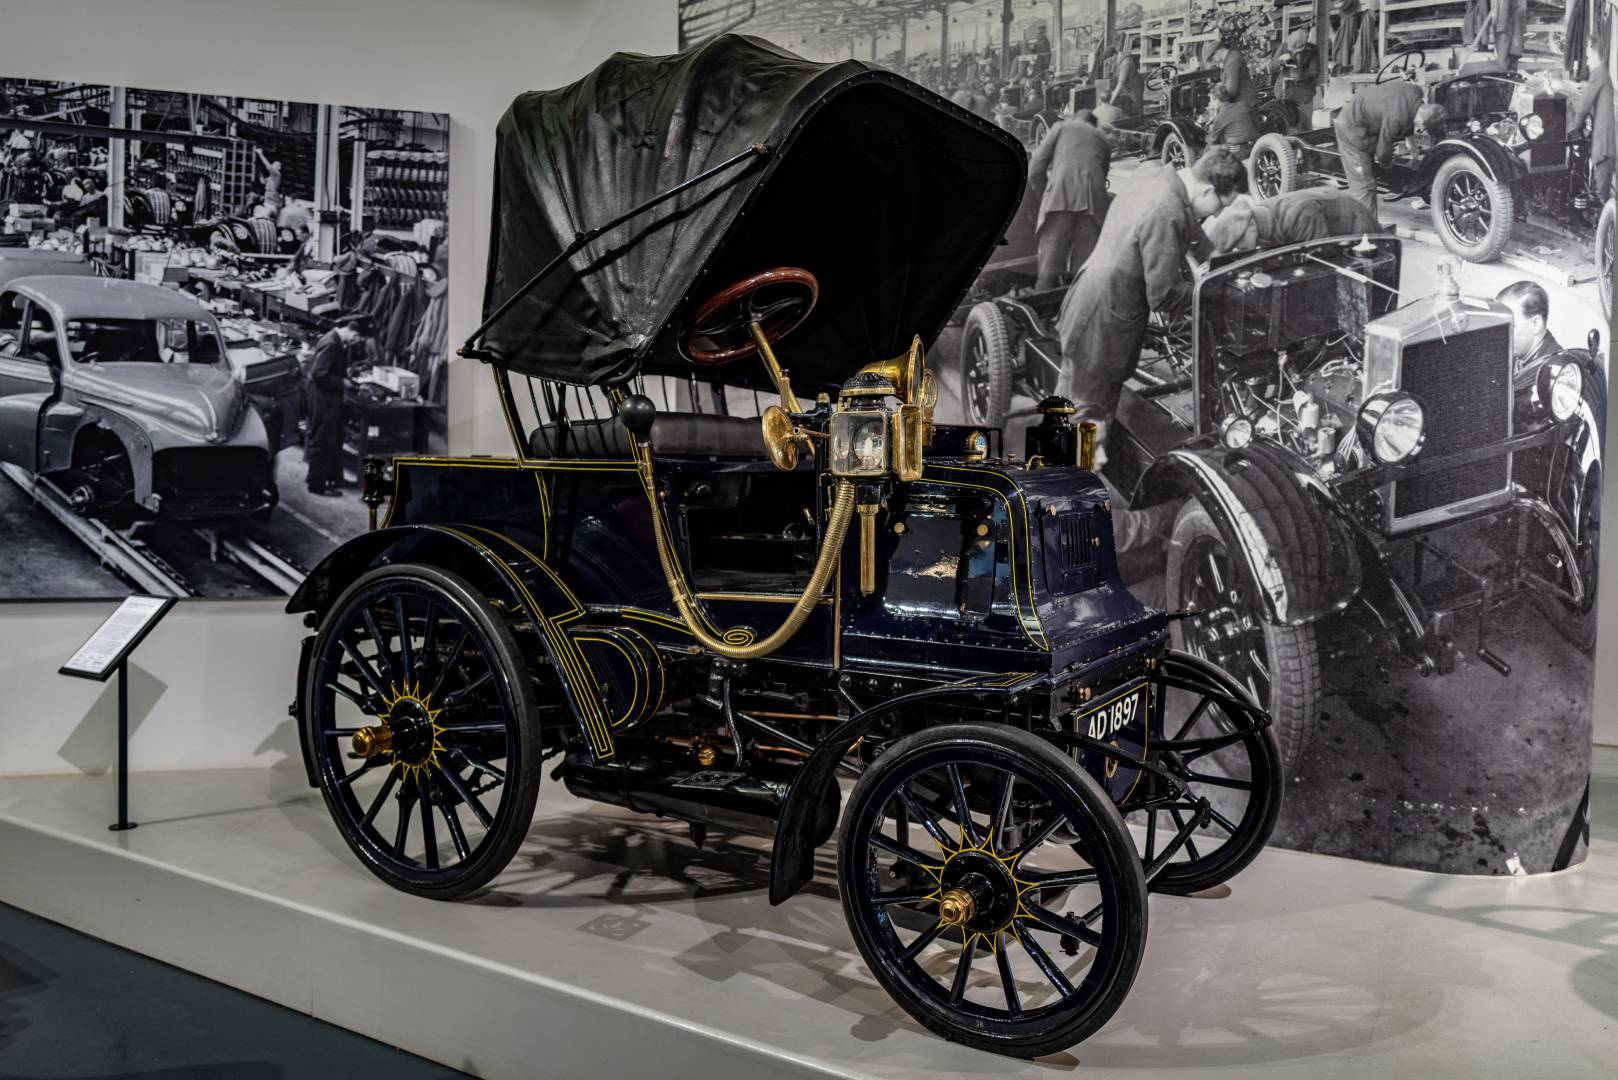 This magnificent beast is the 1807 Daimler Grafton Phæton, the oldest Coventry-built Daimler. The company was founded the year before and held the British rights to the German Daimler patents. Originally purchased by a Shropshire doctor who, repudedly, took it on tours of France and Belgium, it has had only four owners from new — one of whom kept it from 1906 to 1954. It's powered by a 2-cylinder 1527cc engine and speeds up to 24 mph. In 1897 it cost £375, a small fortune in those days